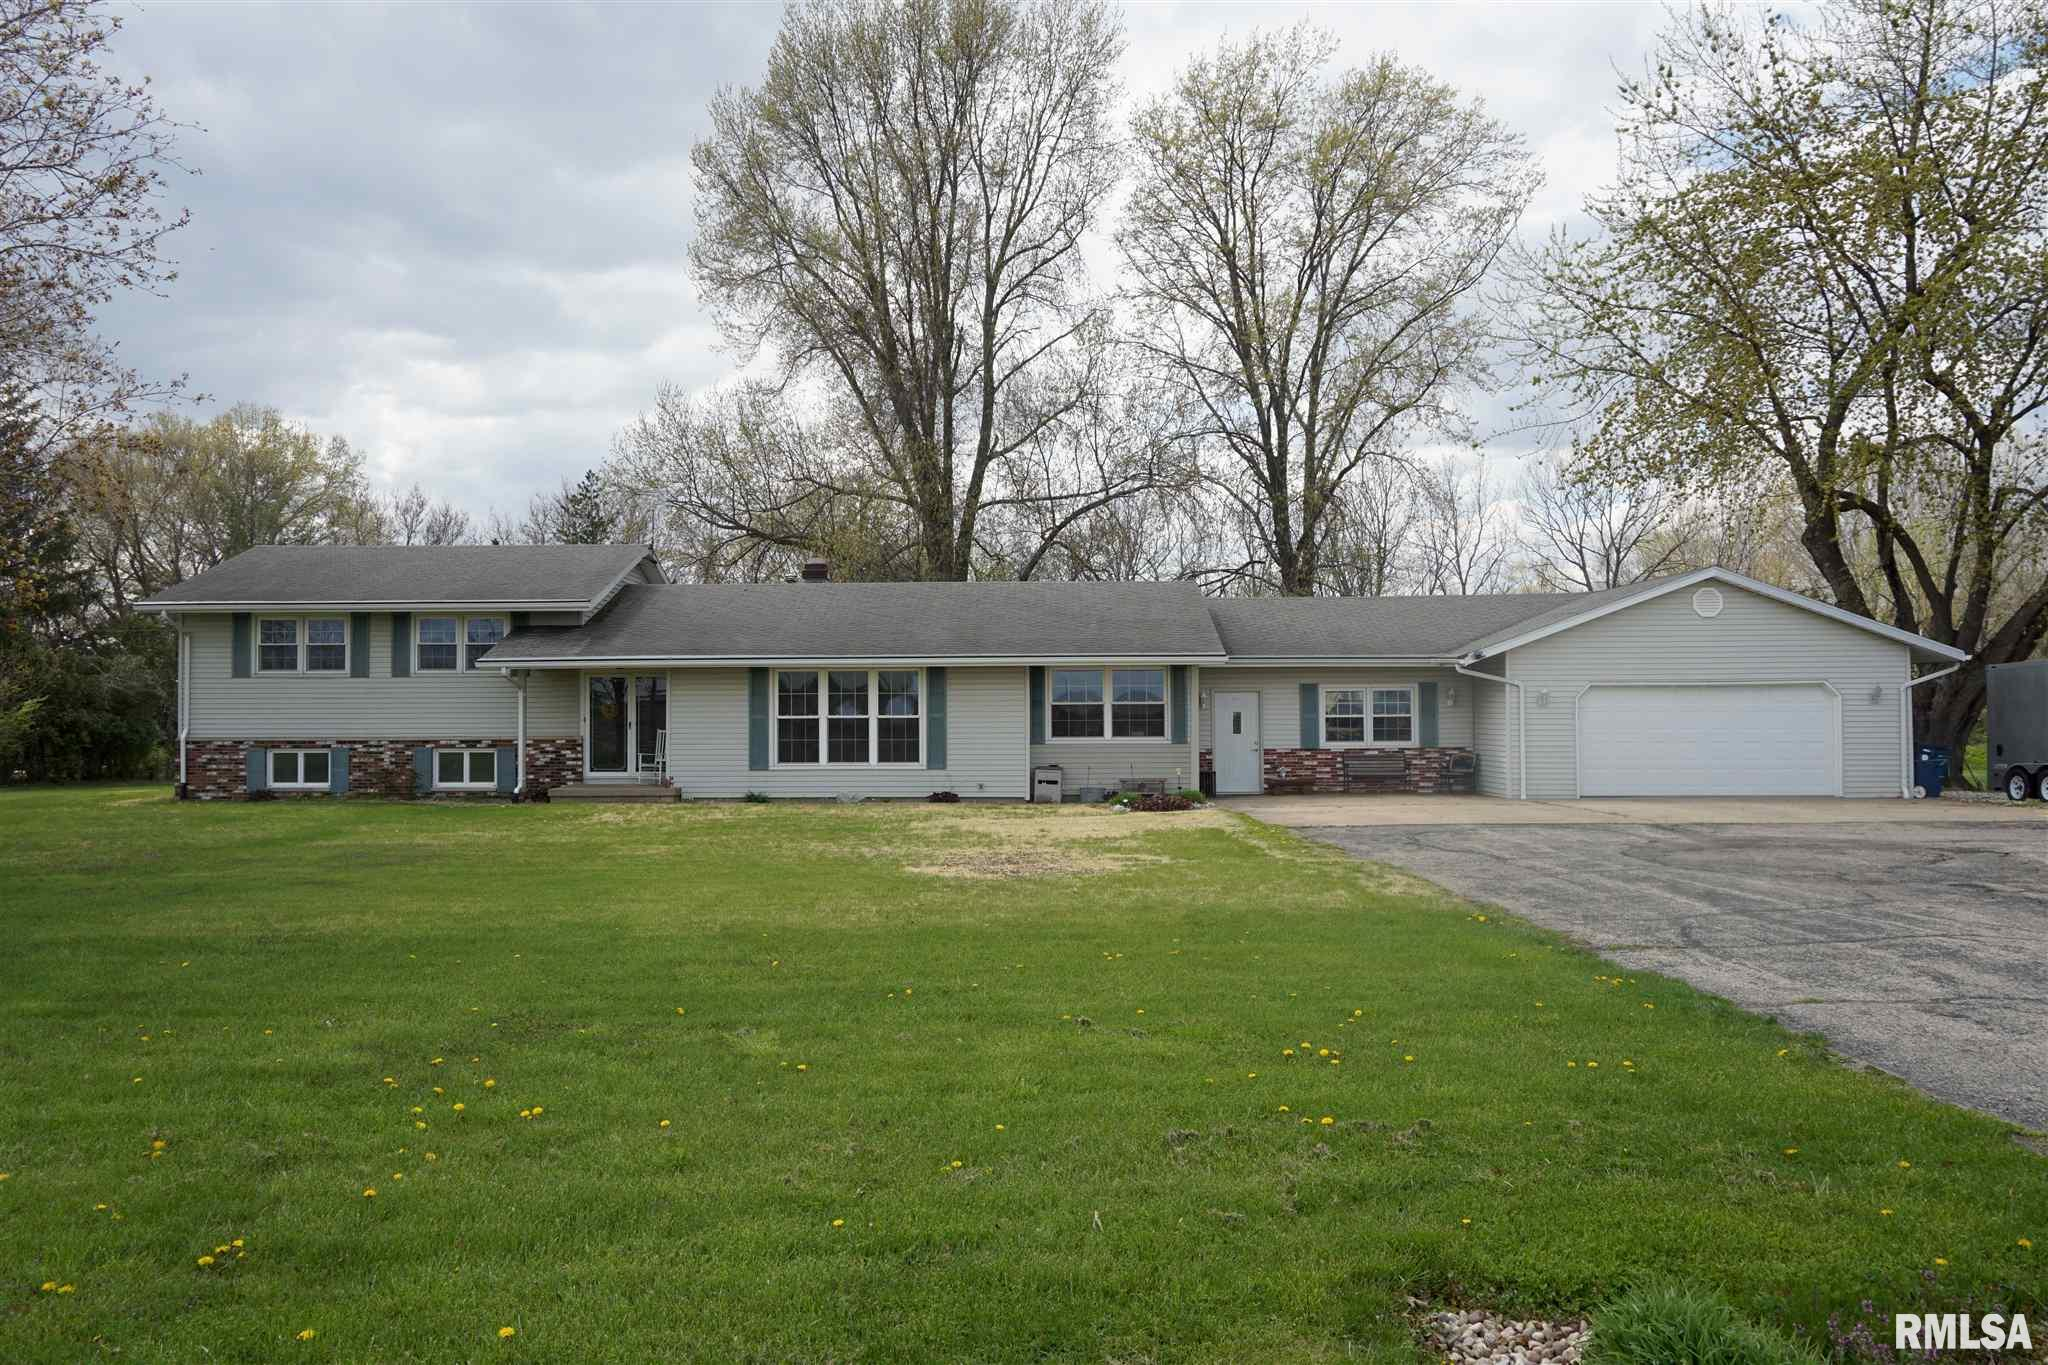 21162 N TAYLOR Property Photo - Canton, IL real estate listing